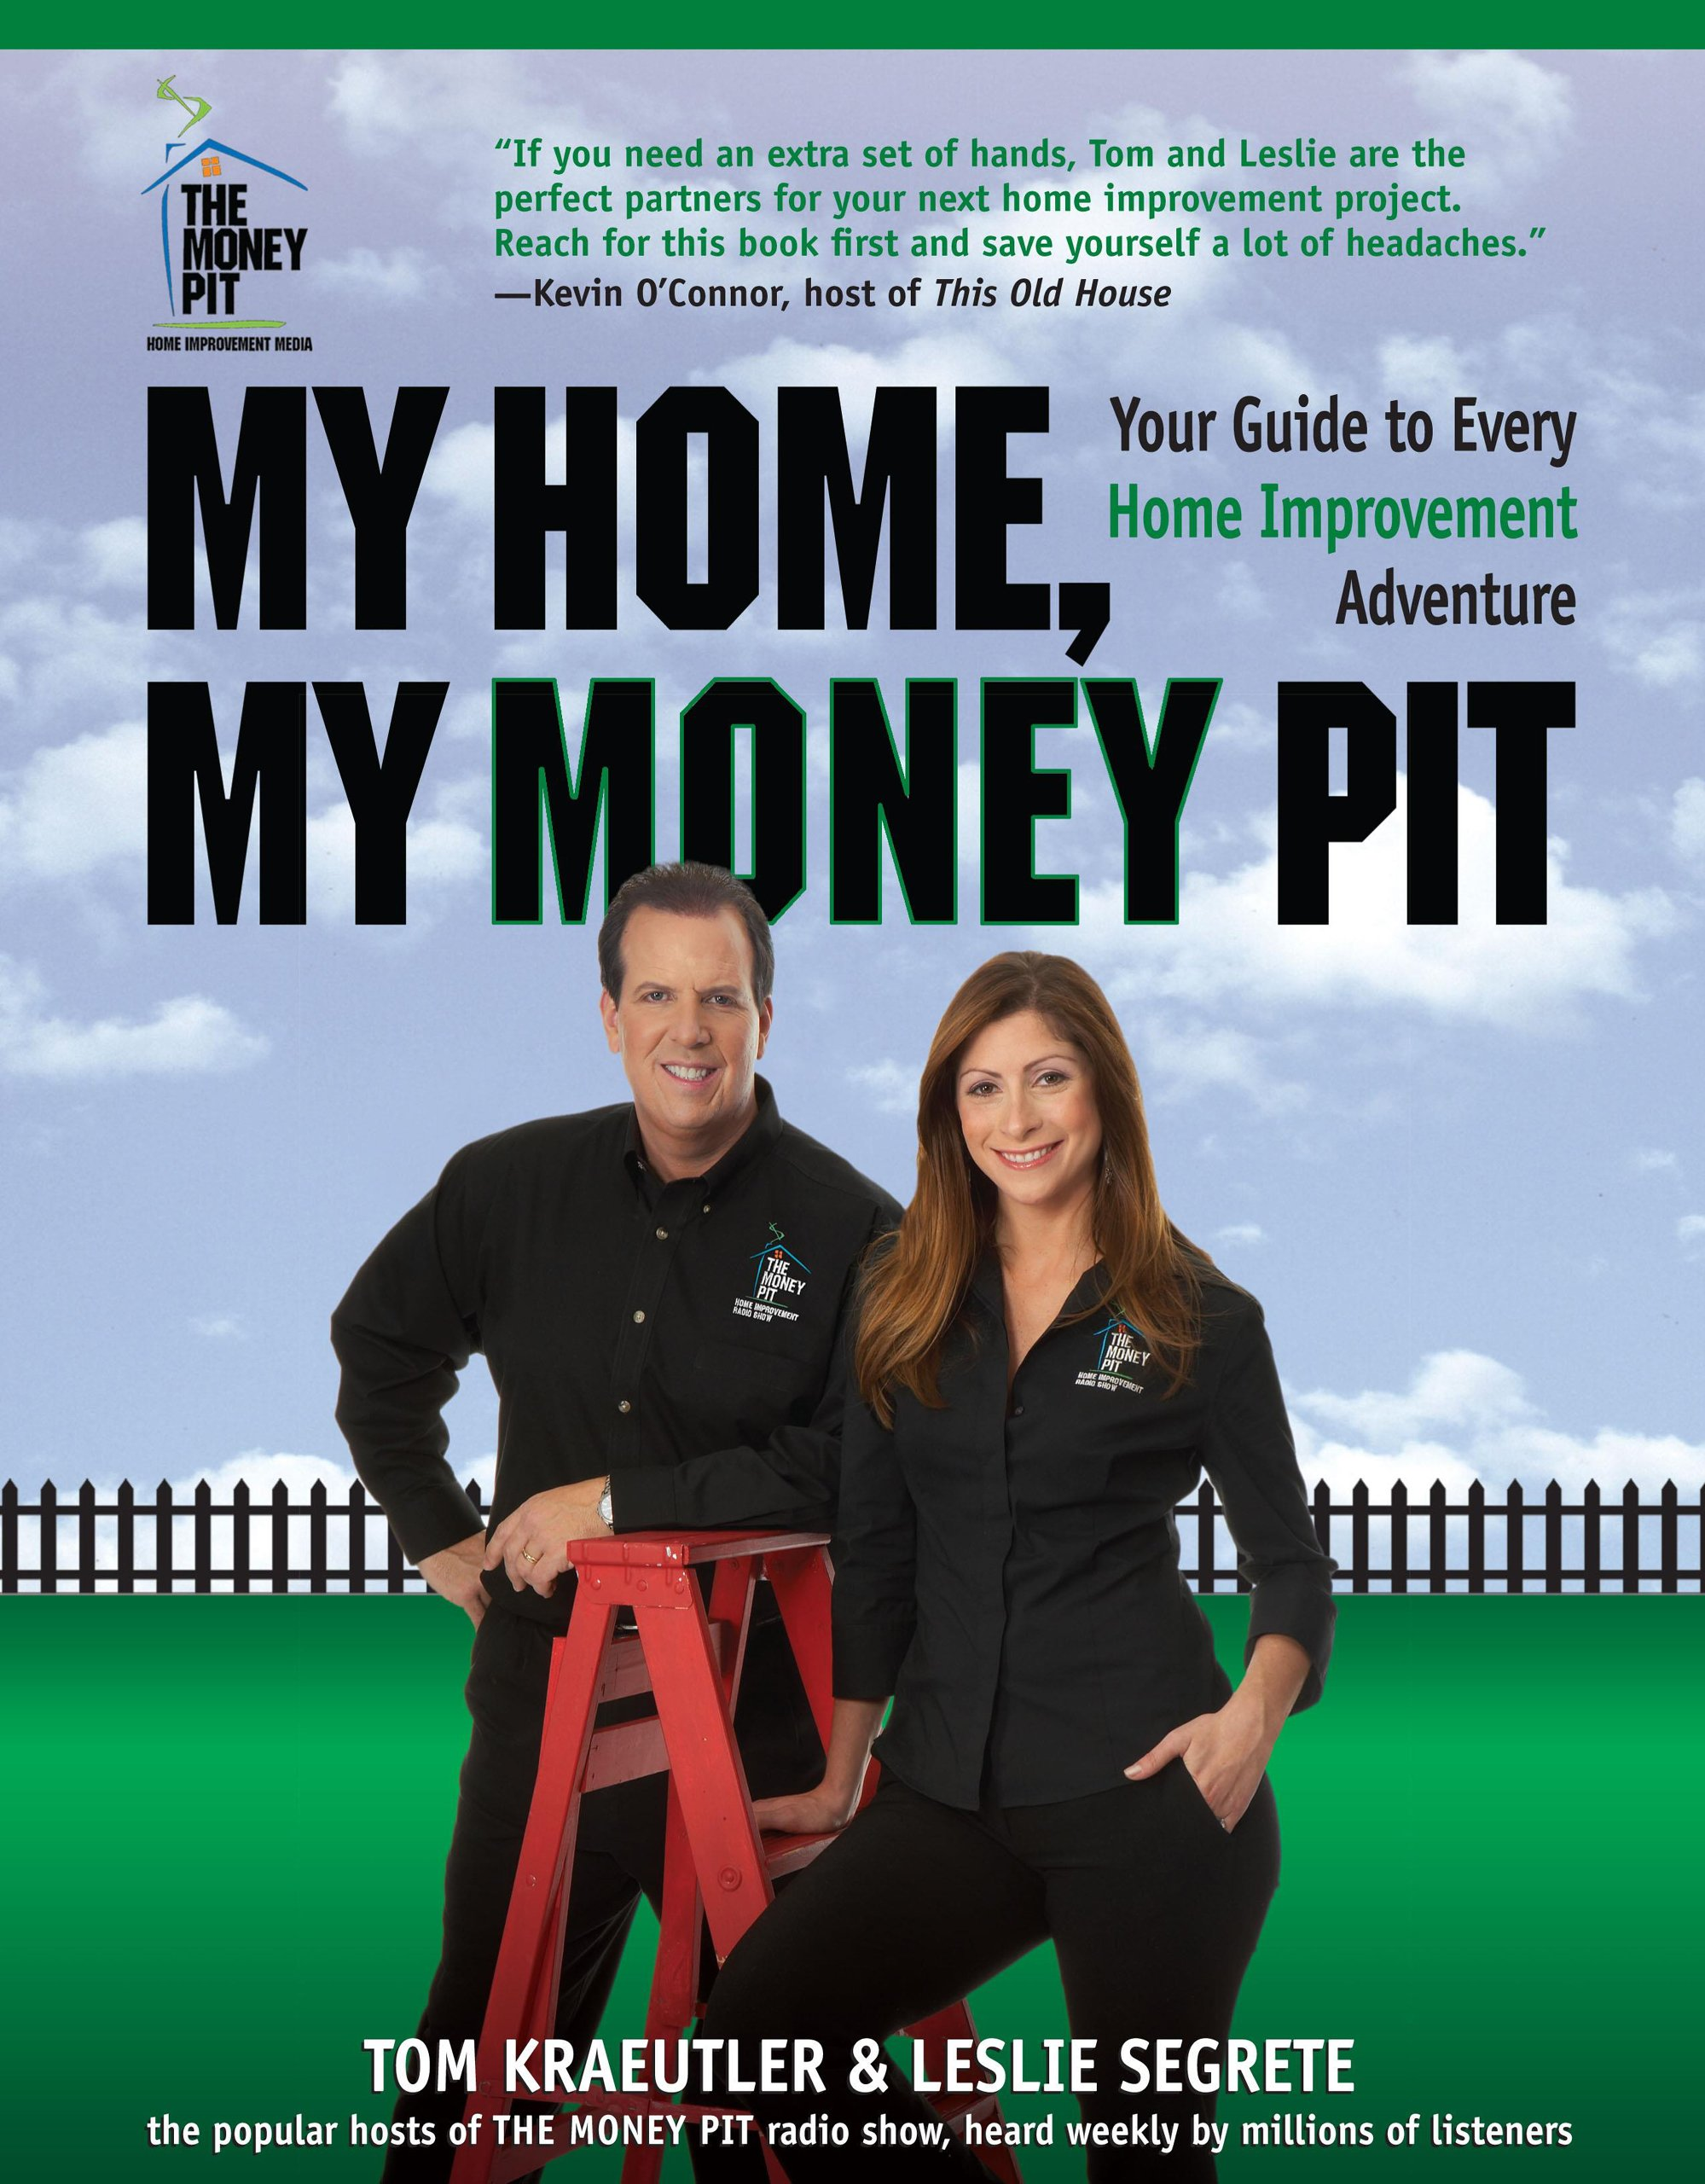 My home my money pit your guide to every home improvement my home my money pit your guide to every home improvement adventure tom kraeutler leslie segrete 9781599212876 amazon books solutioingenieria Gallery